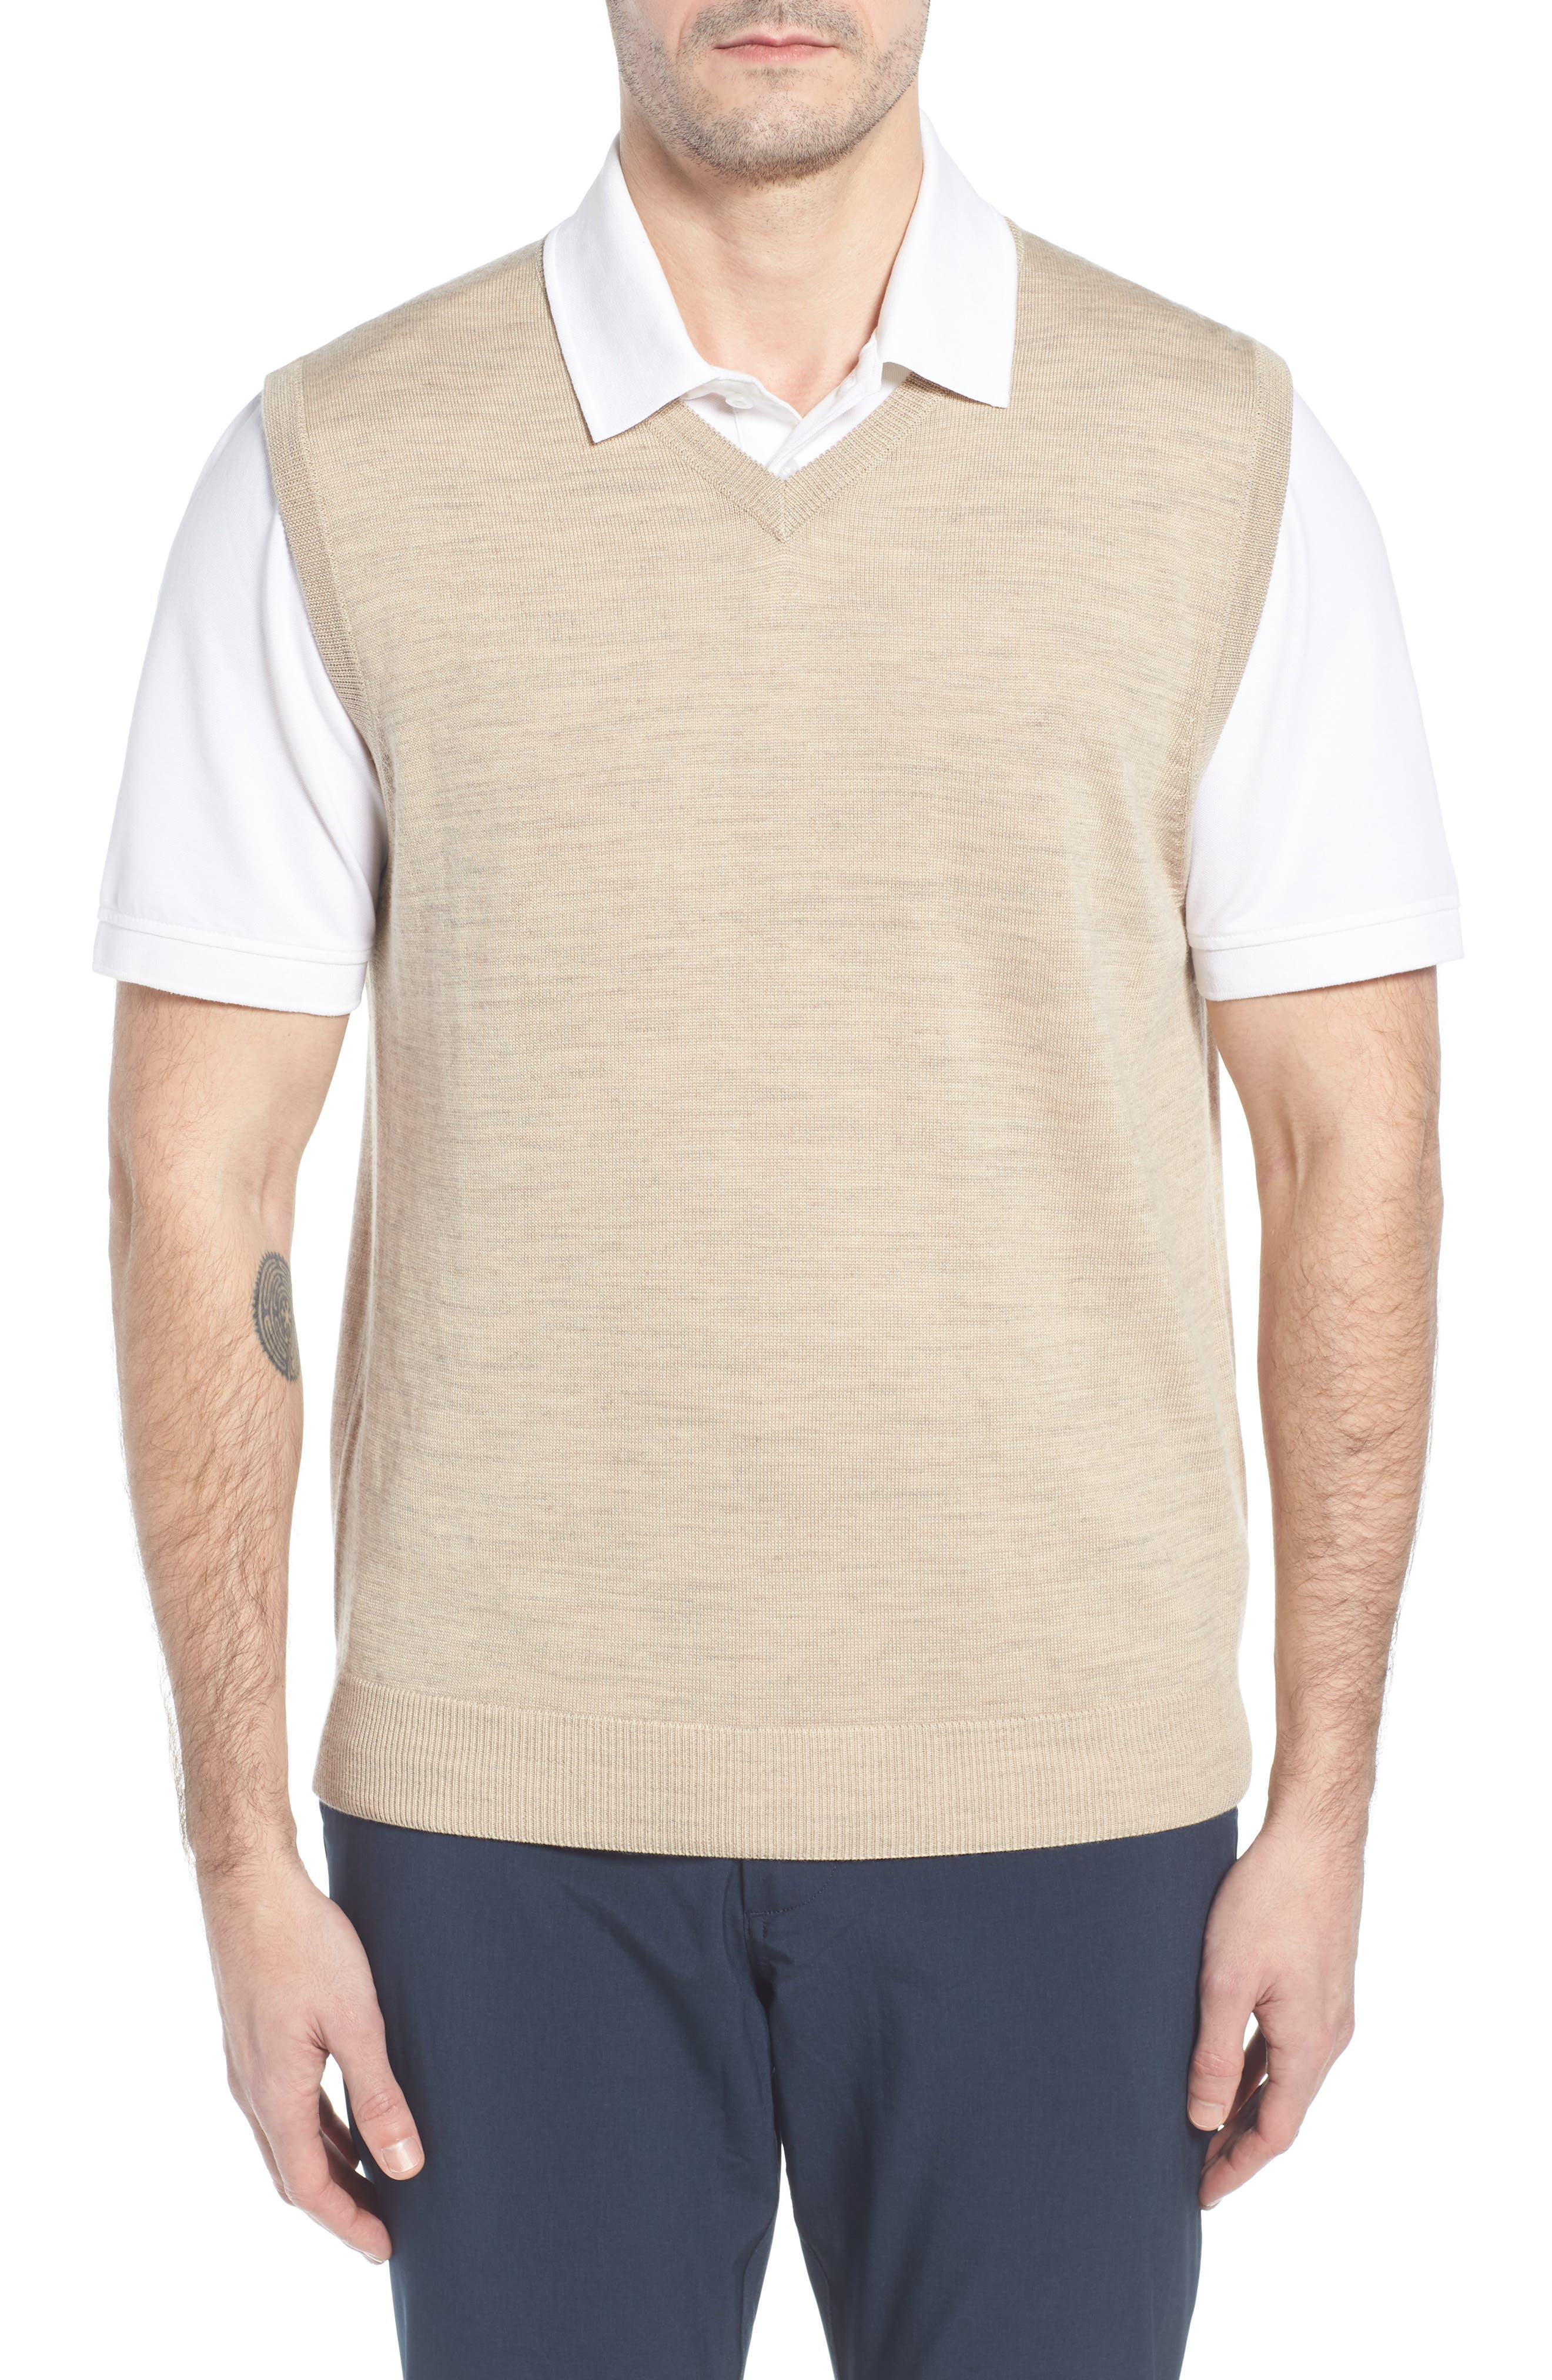 'Douglas' Merino Wool Blend V-Neck Sweater Vest,                             Main thumbnail 1, color,                             SAND HEATHER